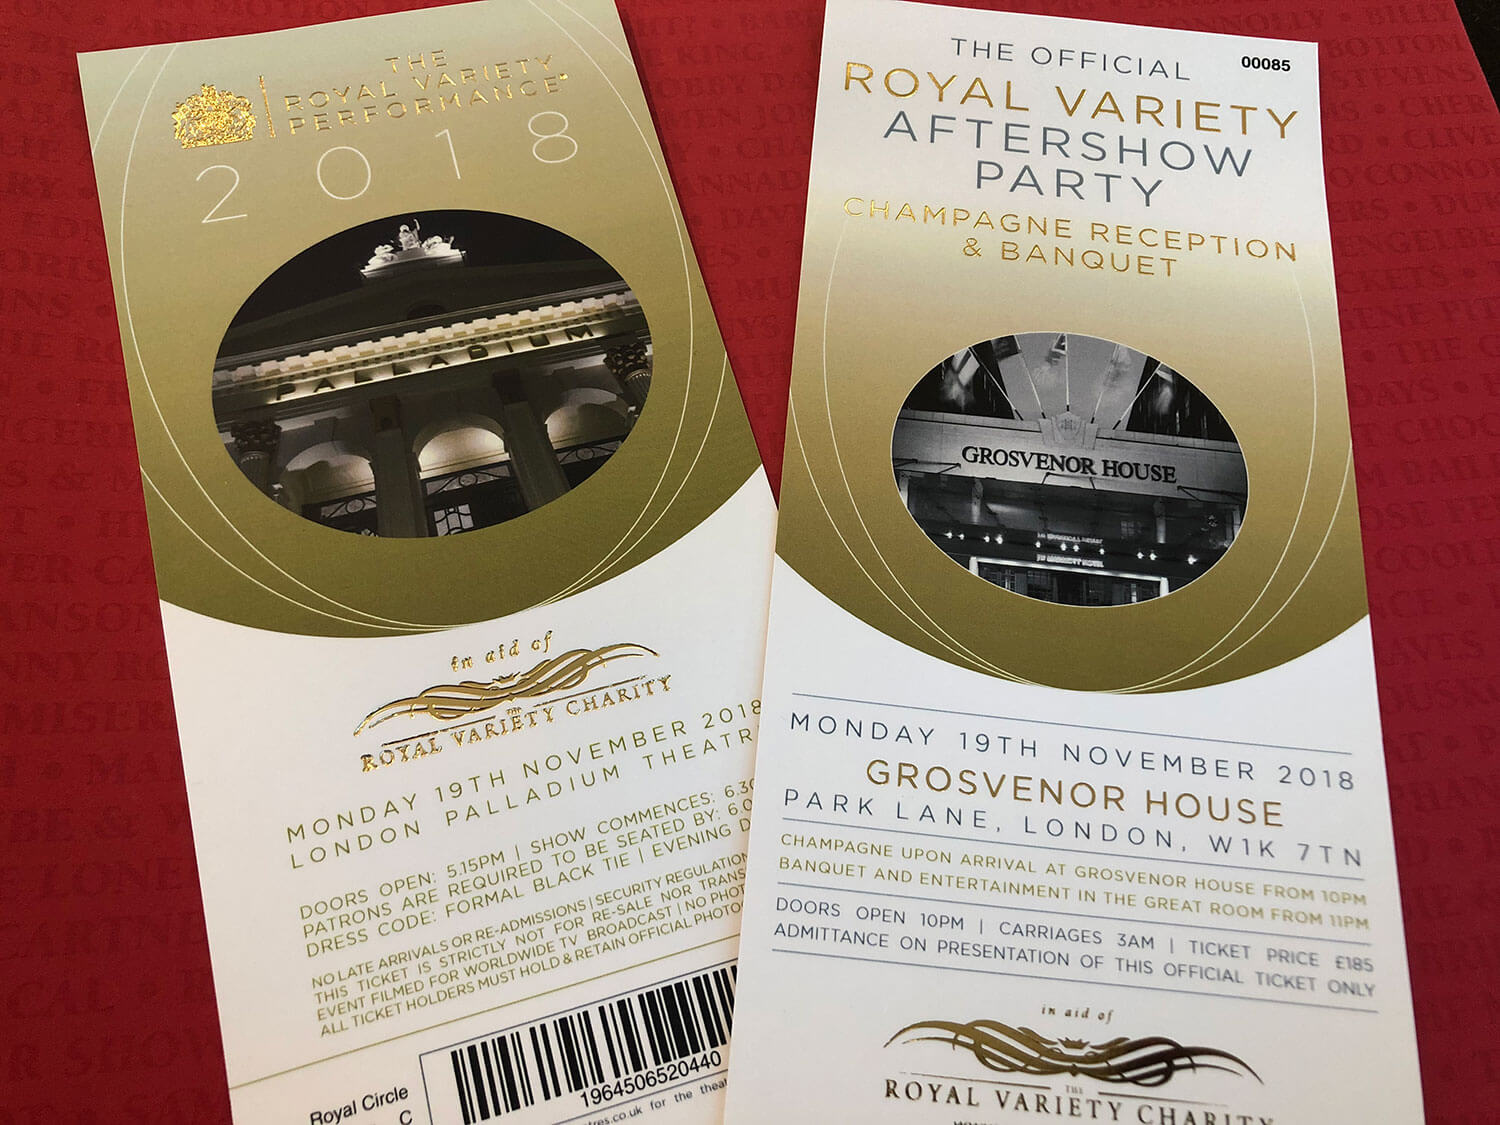 The Royal Variety Performance Experience